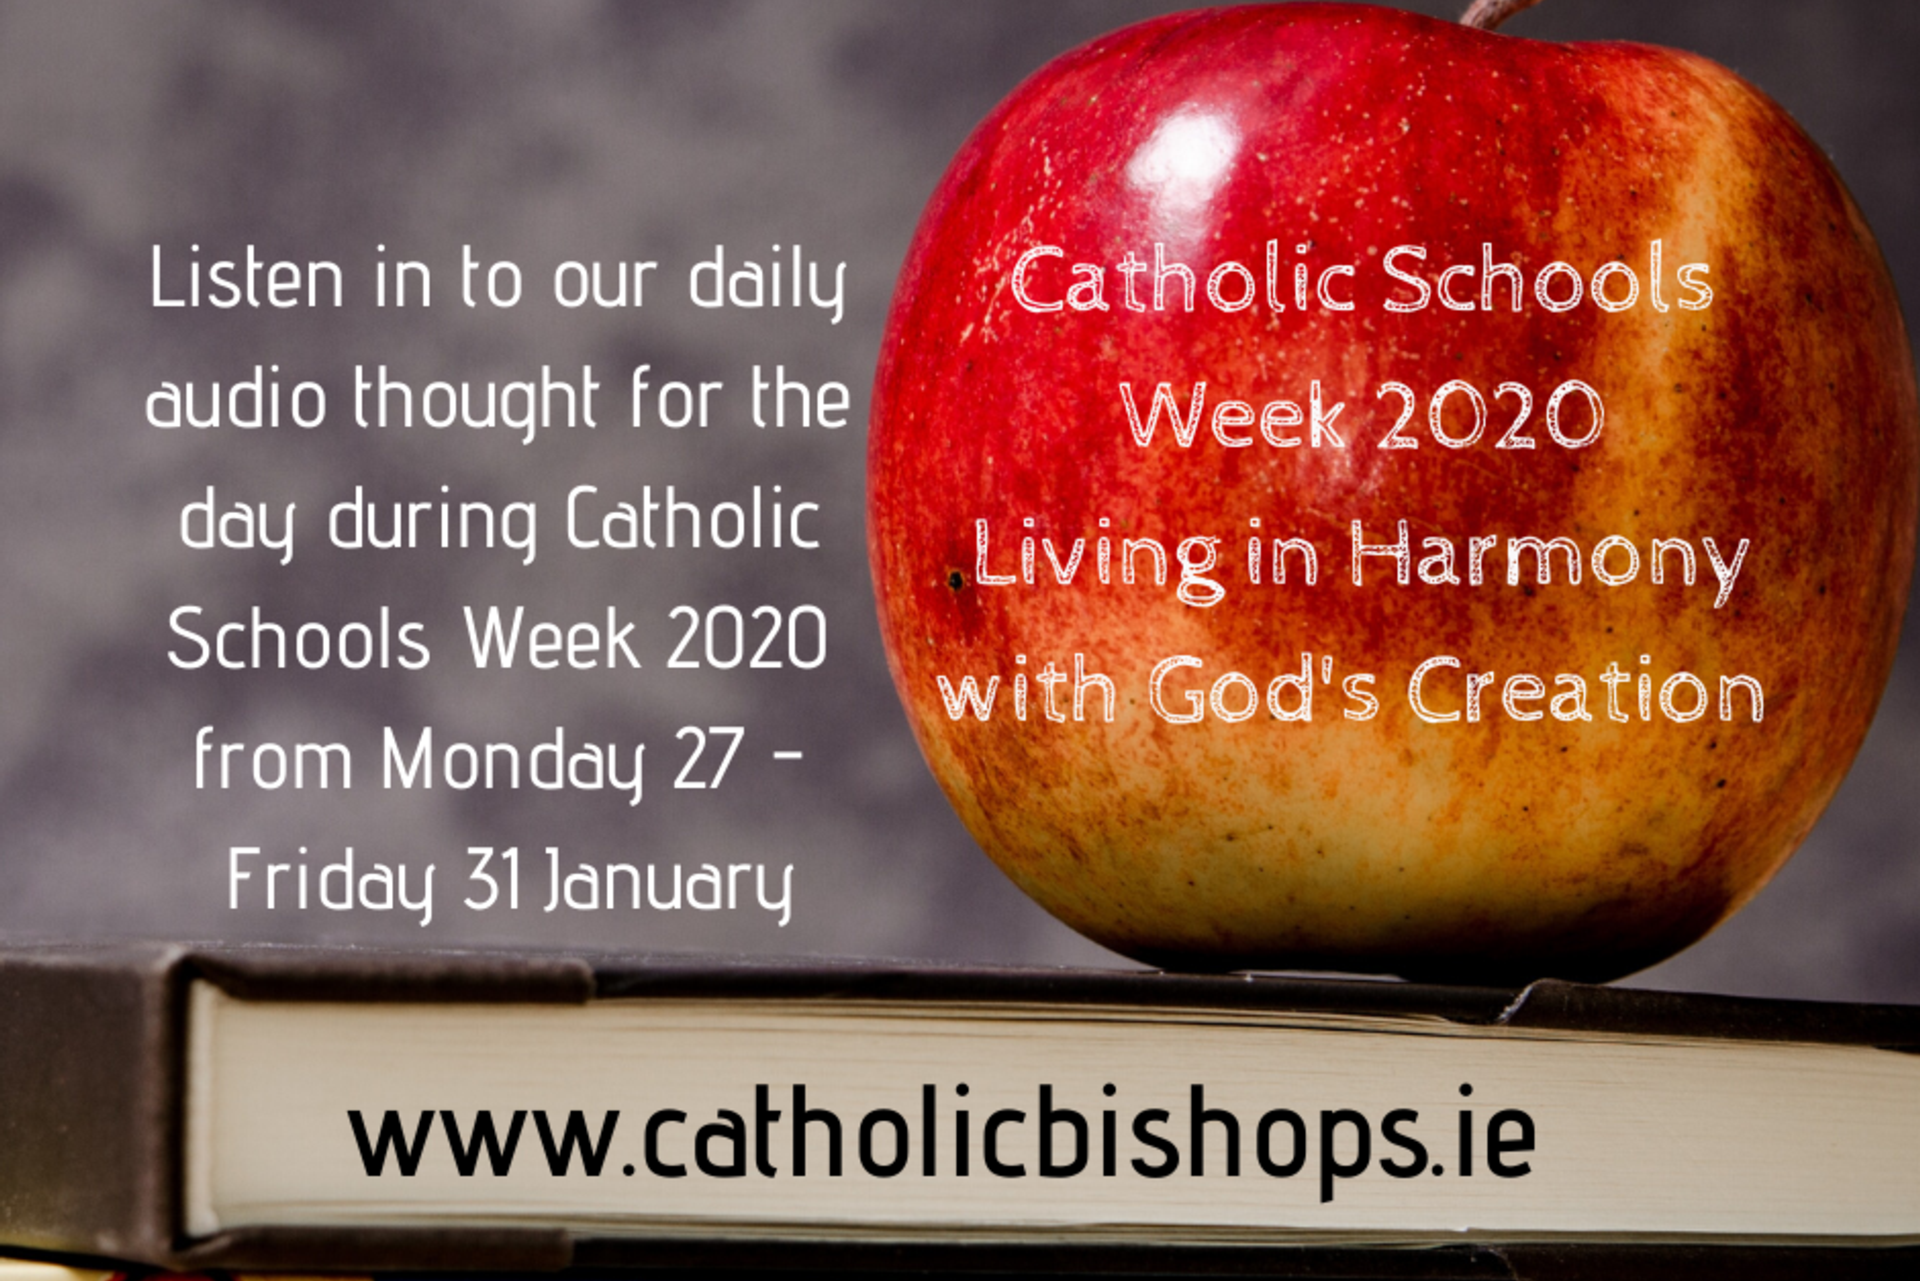 New audio and Resources for Wednesday of Catholic Schools Week 2020